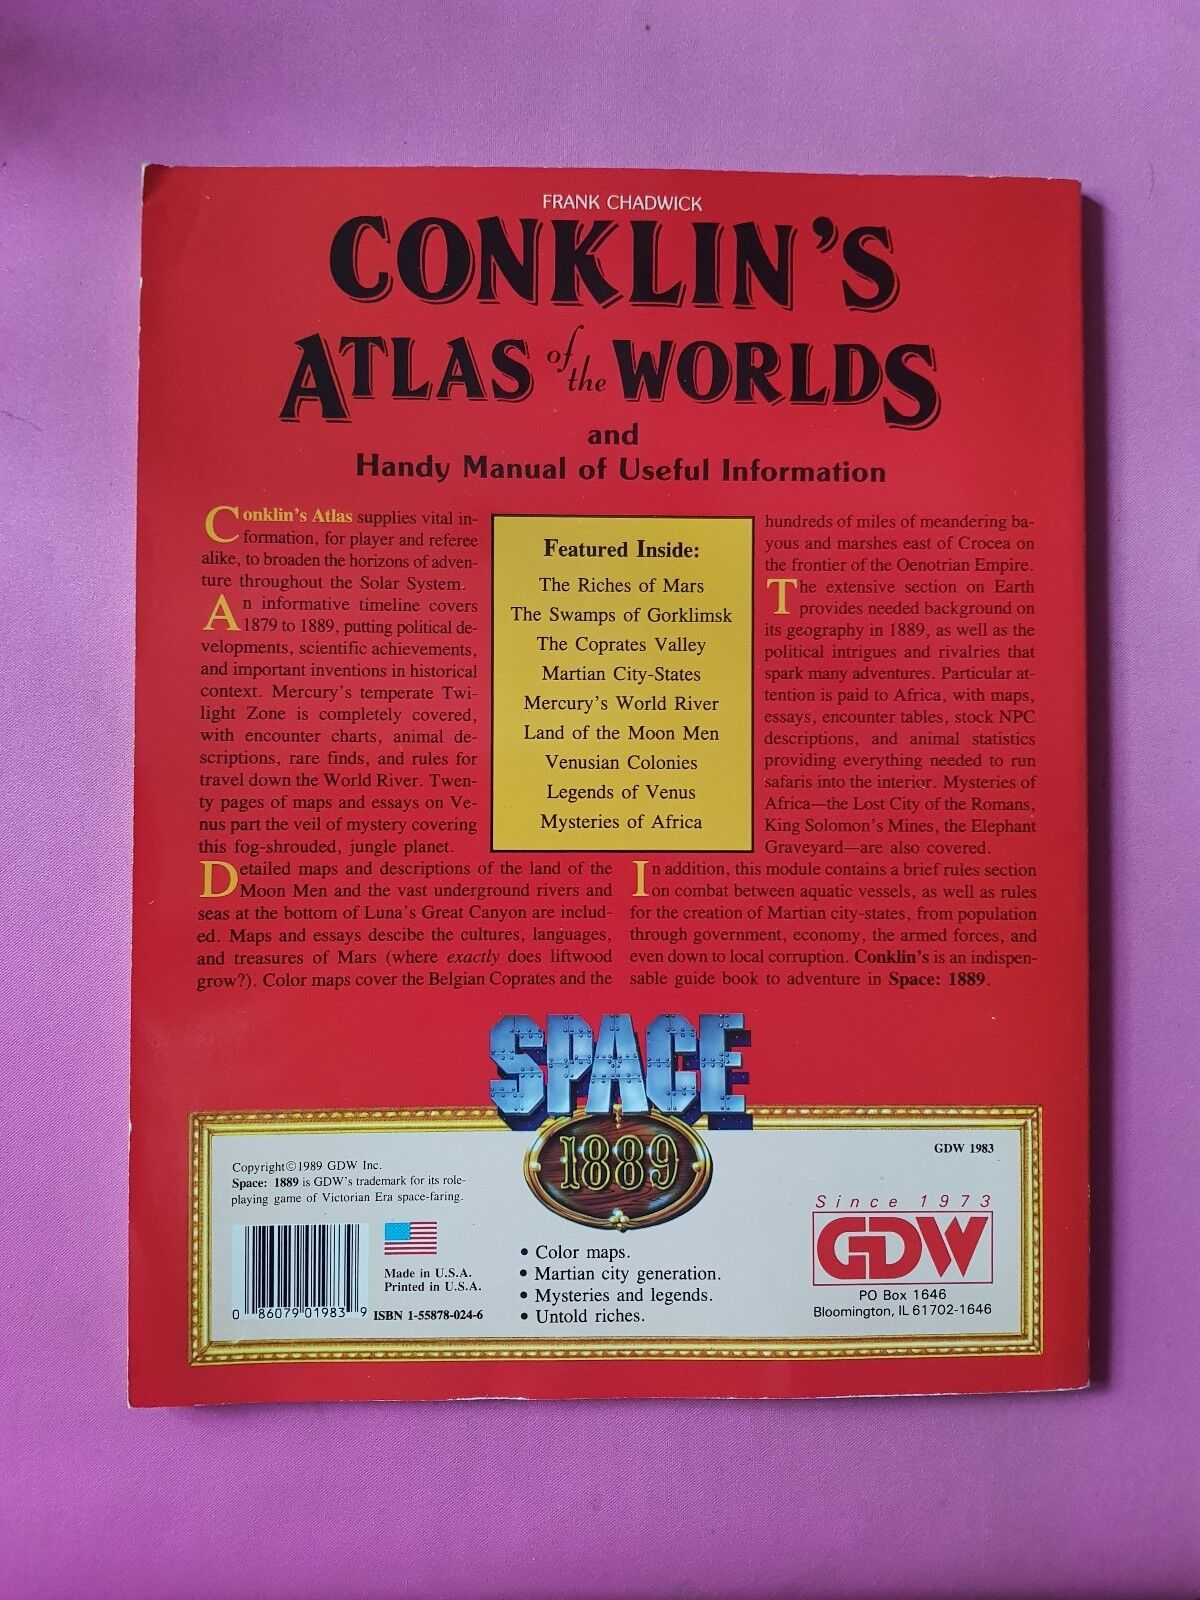 CONKLINS ATLAS ATLAS ATLAS OF THE WORLDS - SPACE 1889 - RPG TABLETOP GDW ROLEPLAYING RARE fb4884